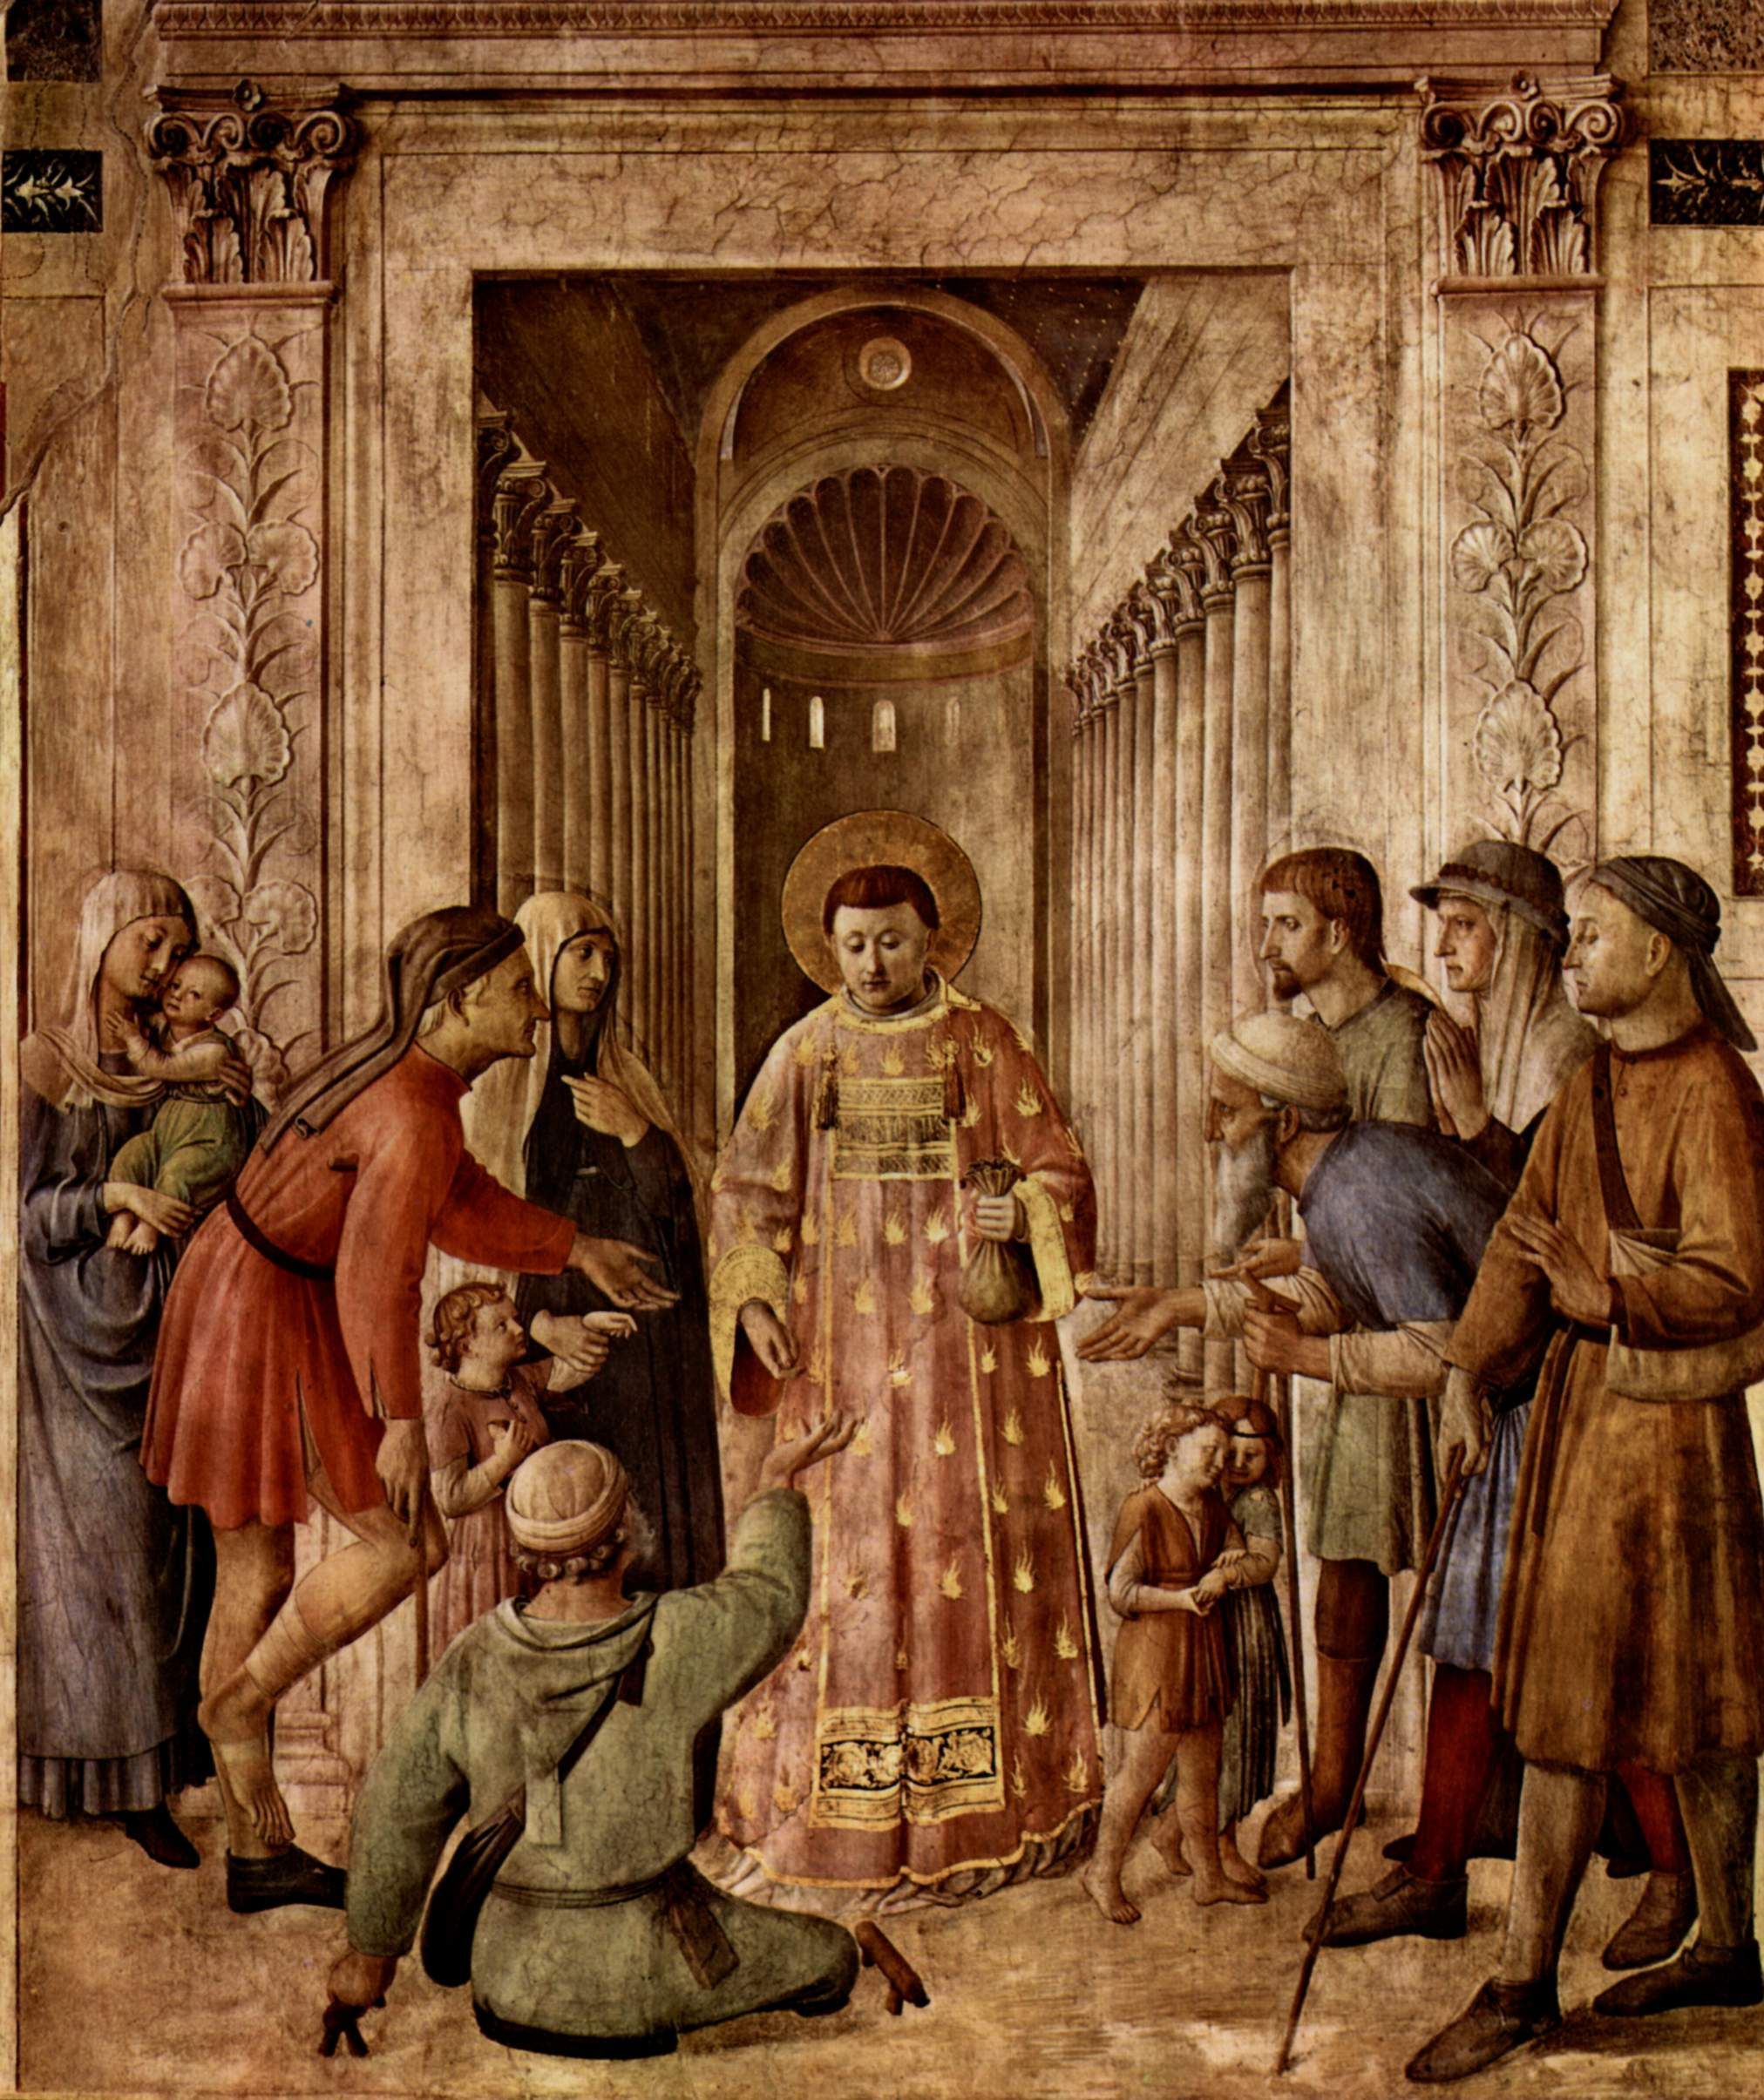 1440's working clothes Fra_Angelico_054.jpg (2024×2410)